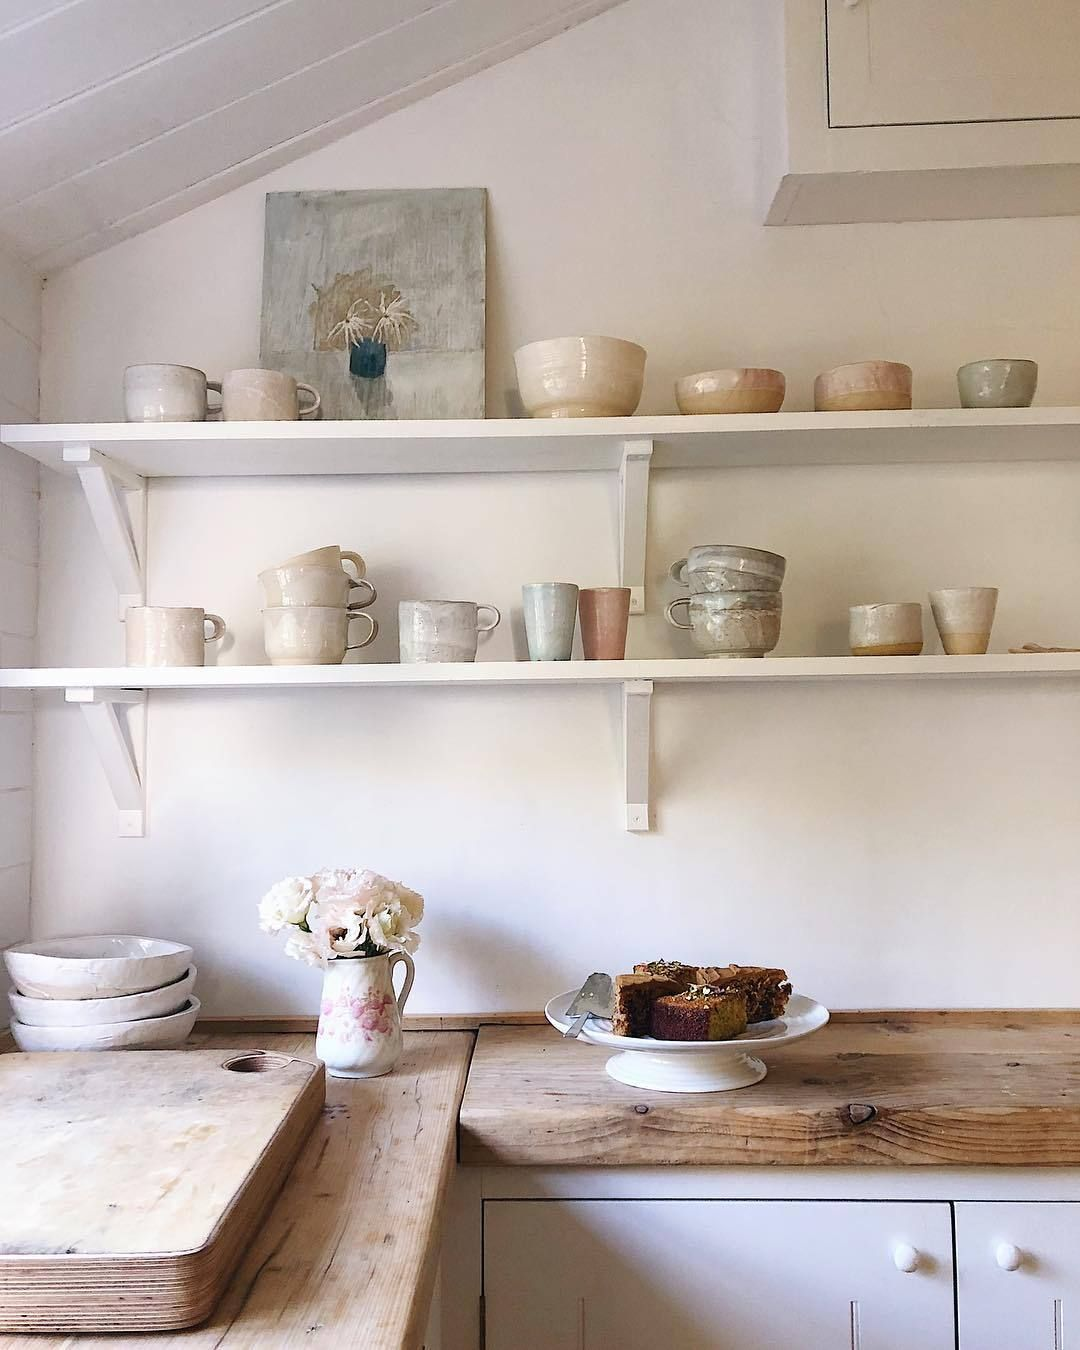 Simple White Kitchen With Wooden Worktop And Open Shelving